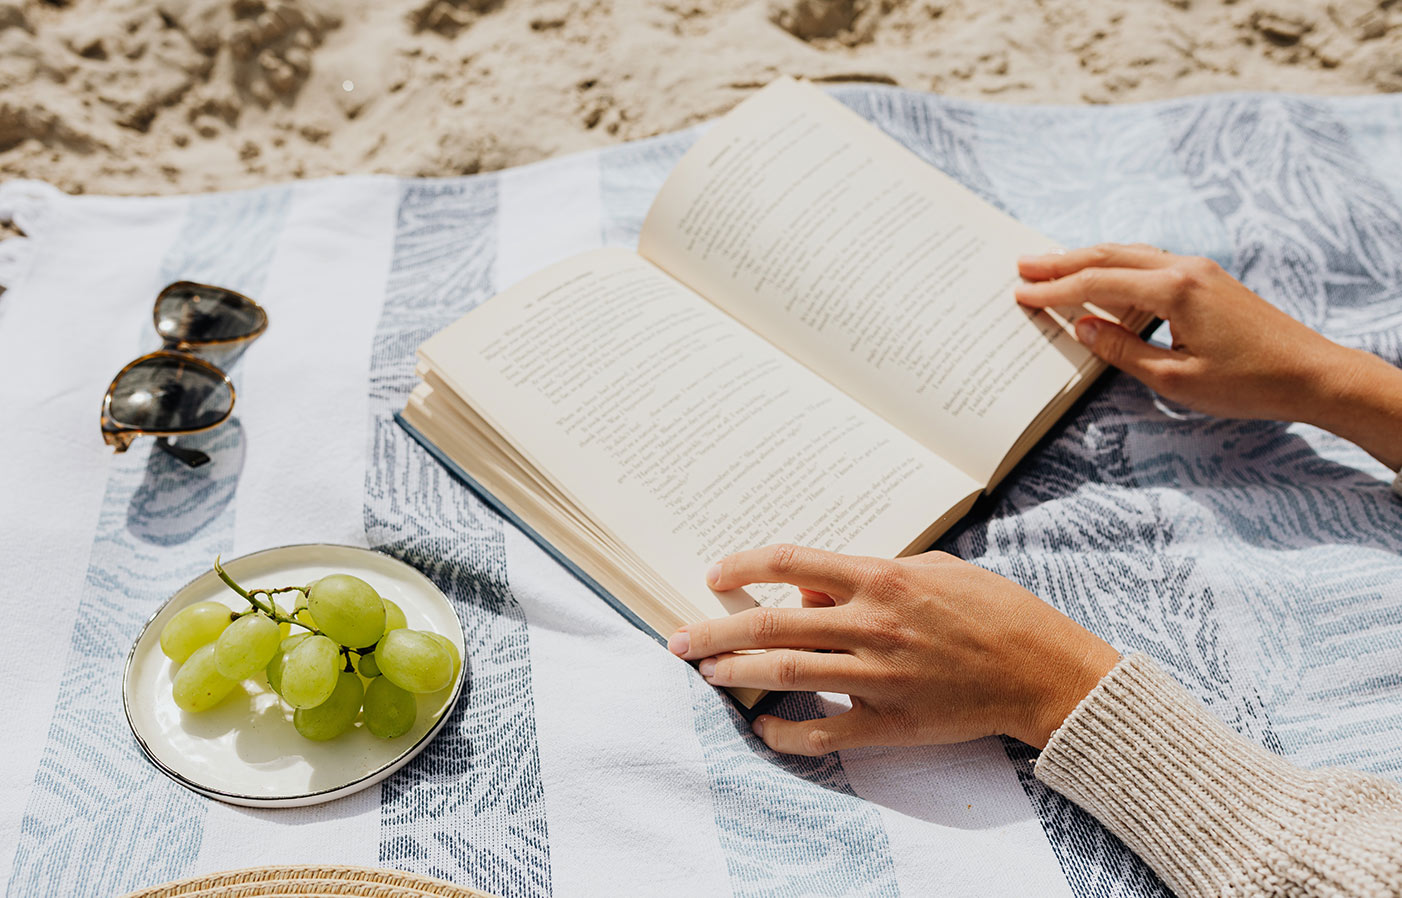 Woman reading a book on the beach with grapes.